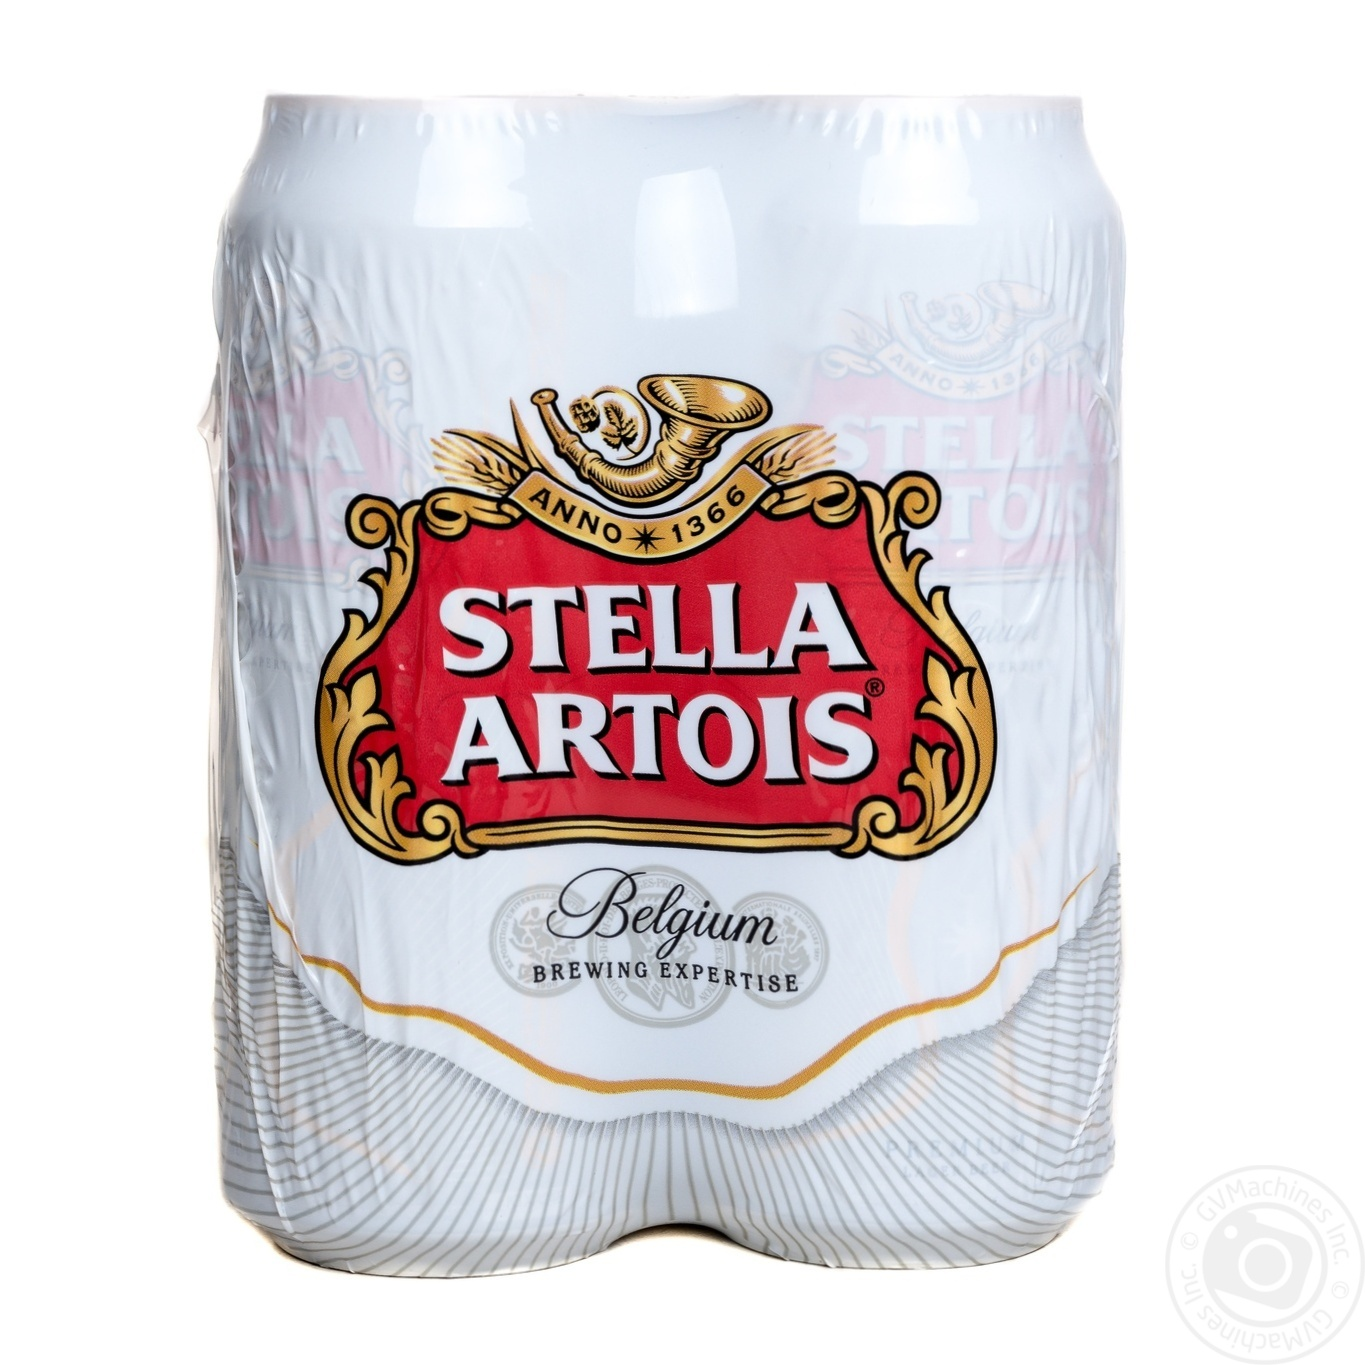 artois online dating There are stir events happening every night all over the country, and we wanted to share with you a few of our favorites each week this week's recap centers around everyone's favorite part.